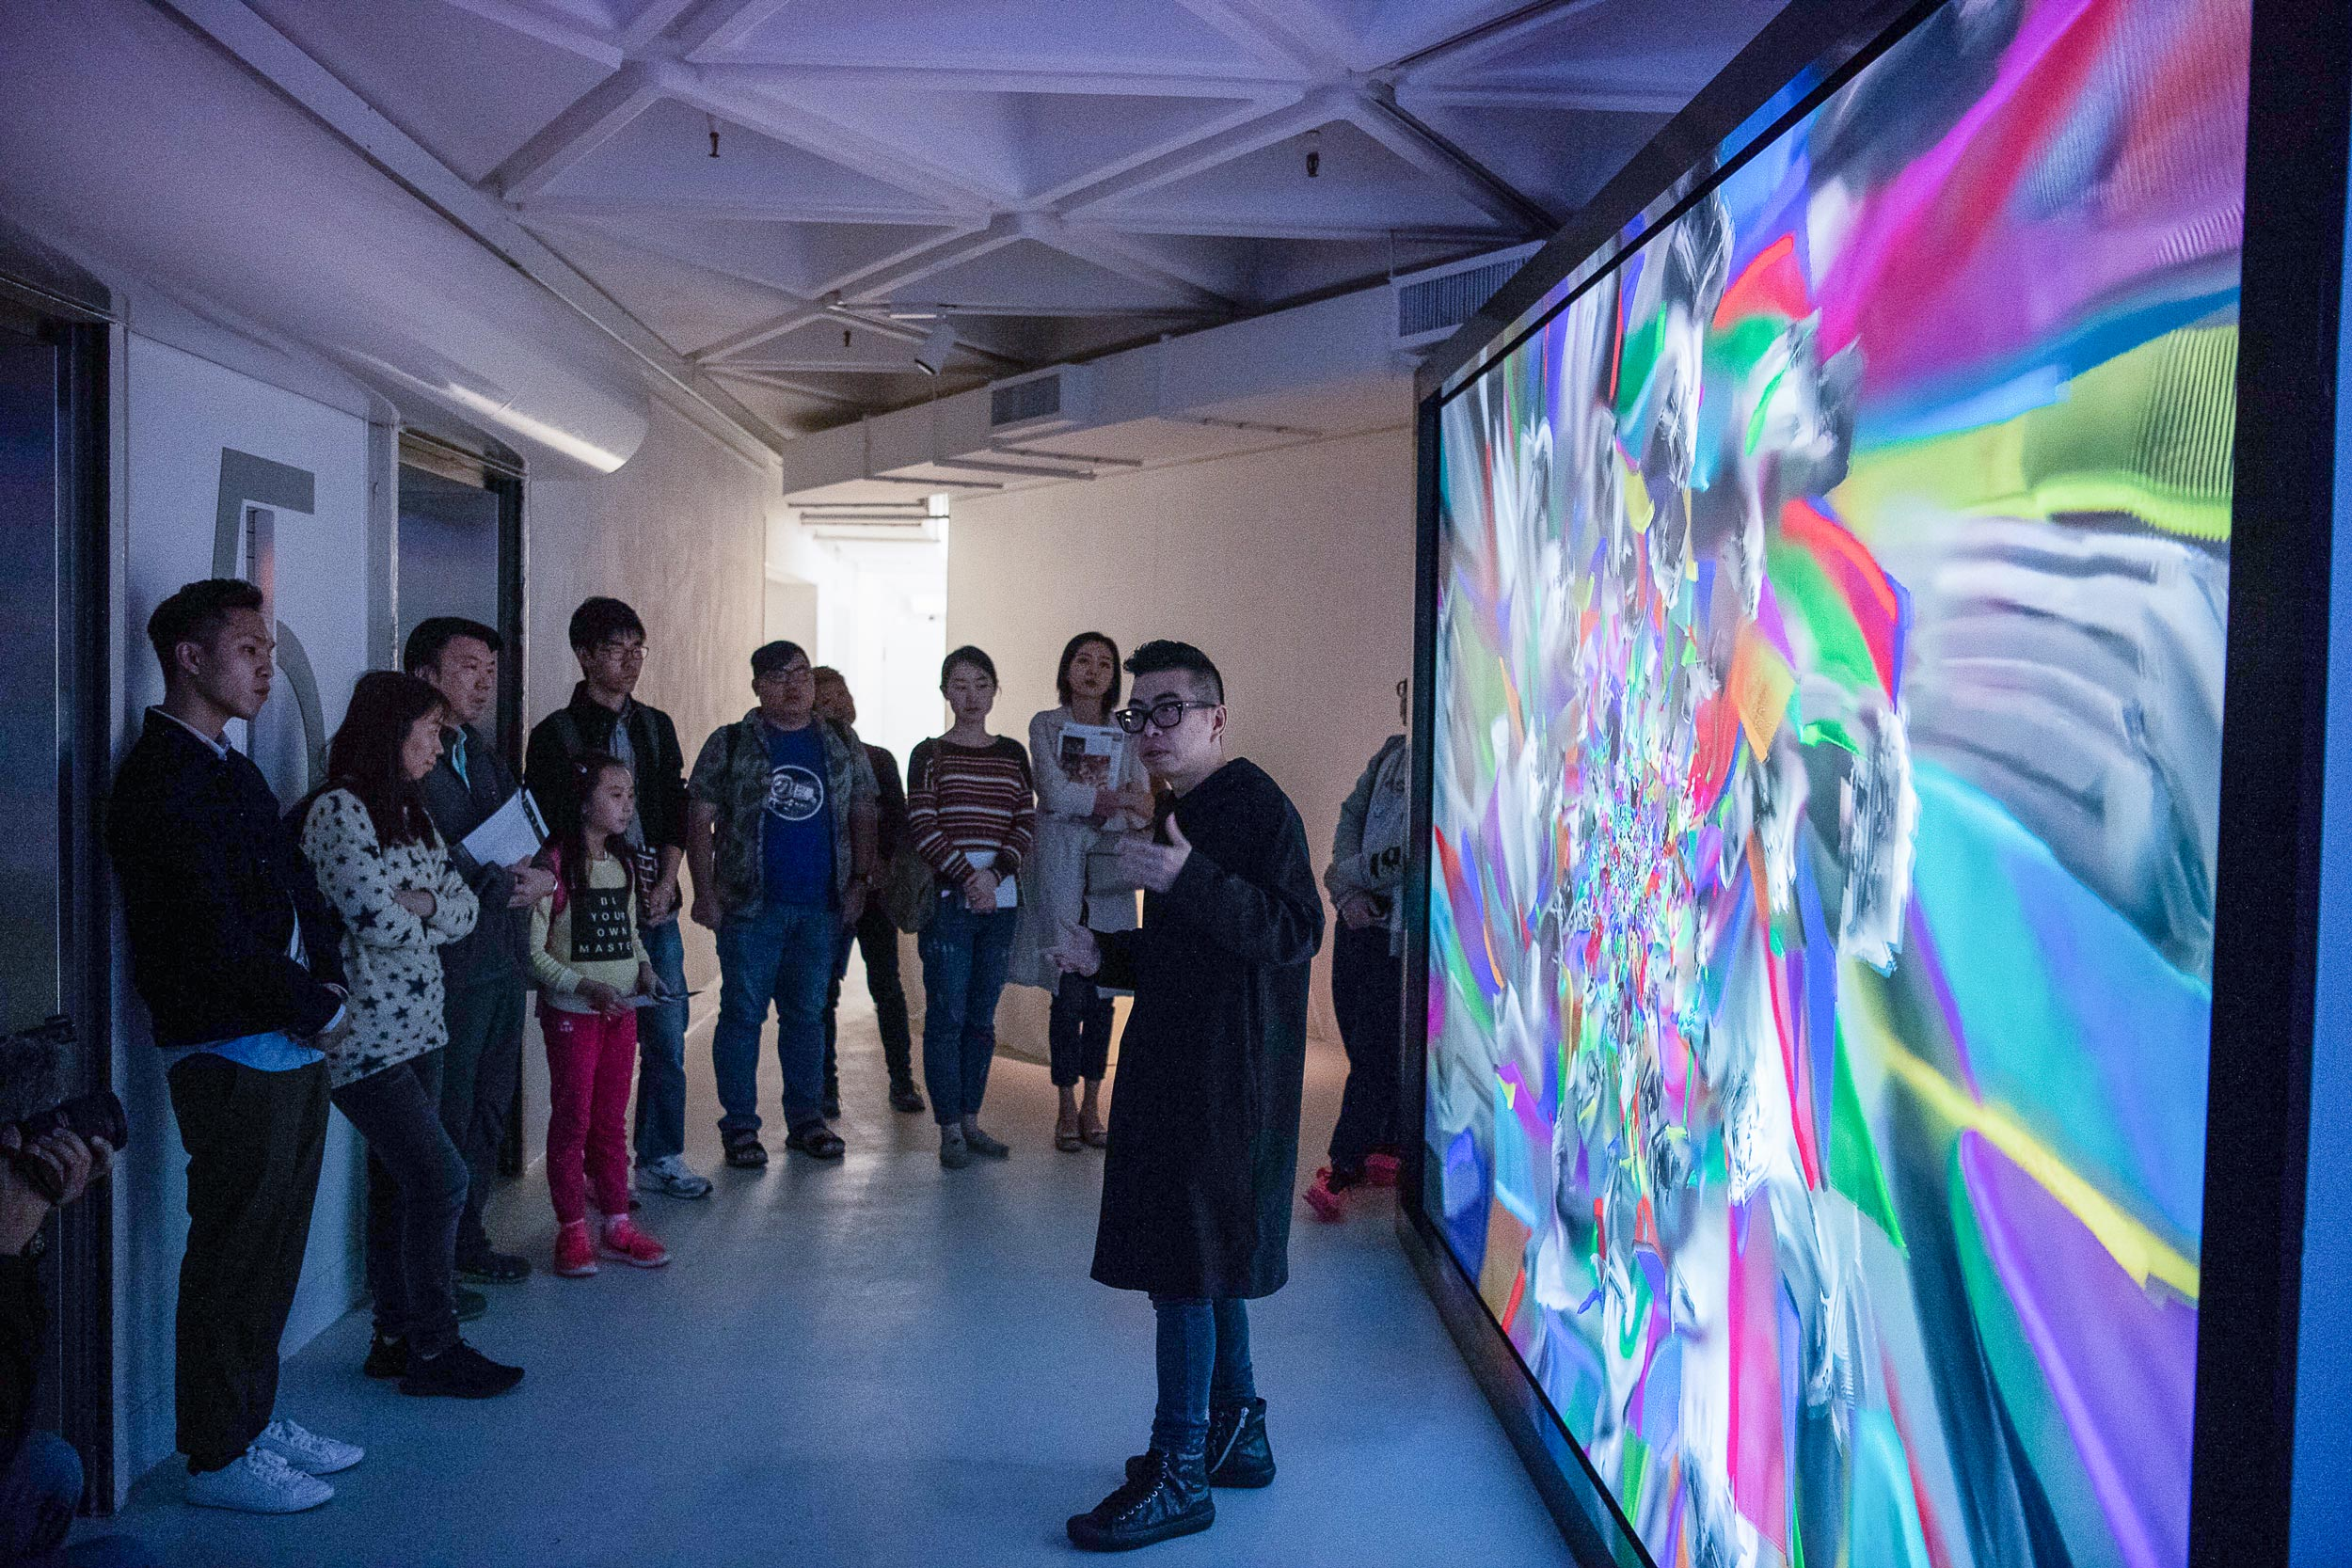 Curator Ip Yuk-yiu led the guided tour and shares with the visitor his curatorial concepts